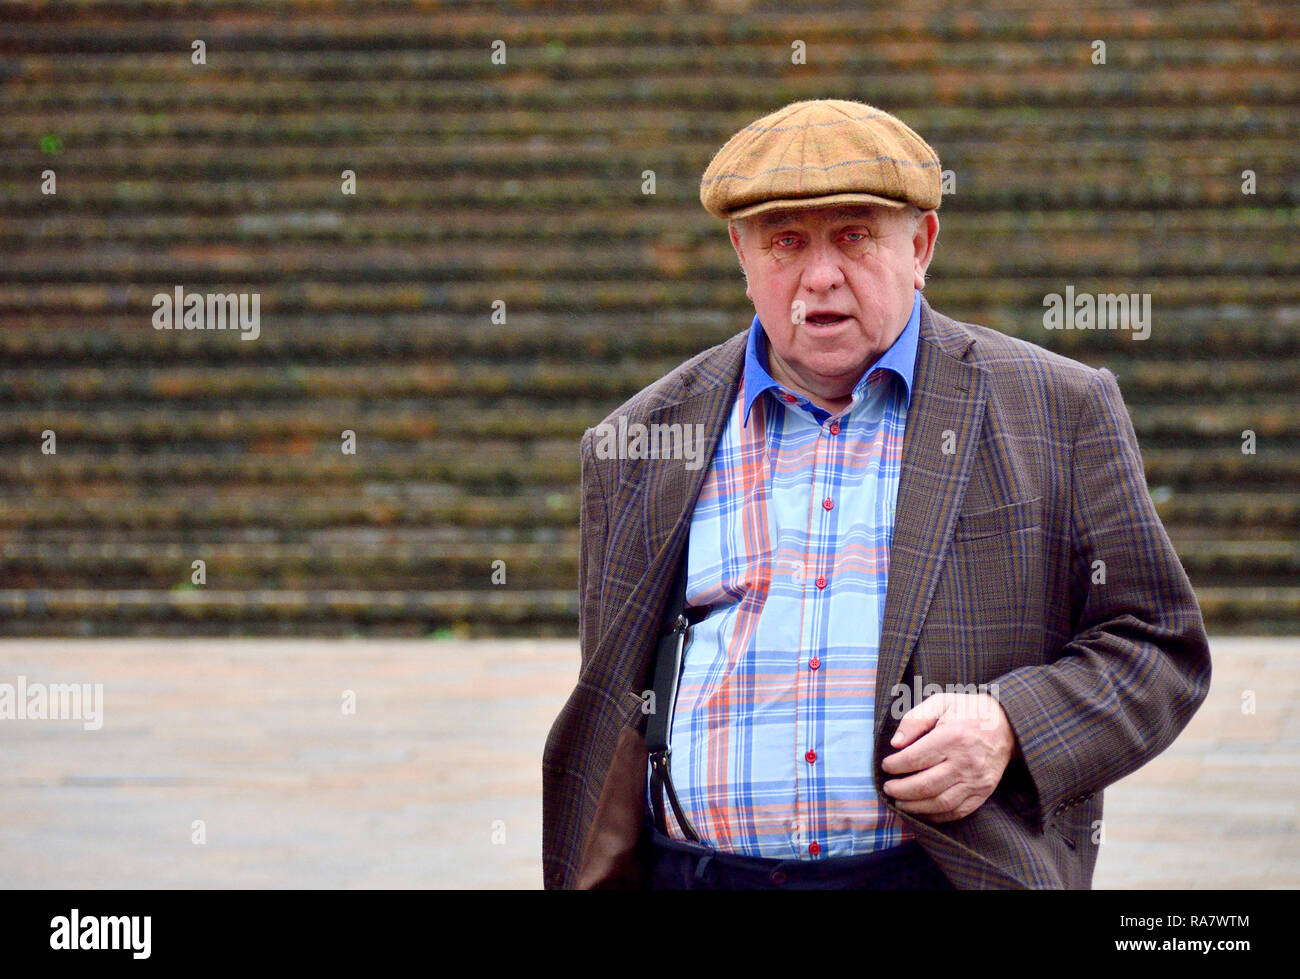 8th November, Maidstone, England. Maidstone County Court rules that the policy of Kent landlord Fergus Wilson banning 'colourds' from rebnting his pro - Stock Image